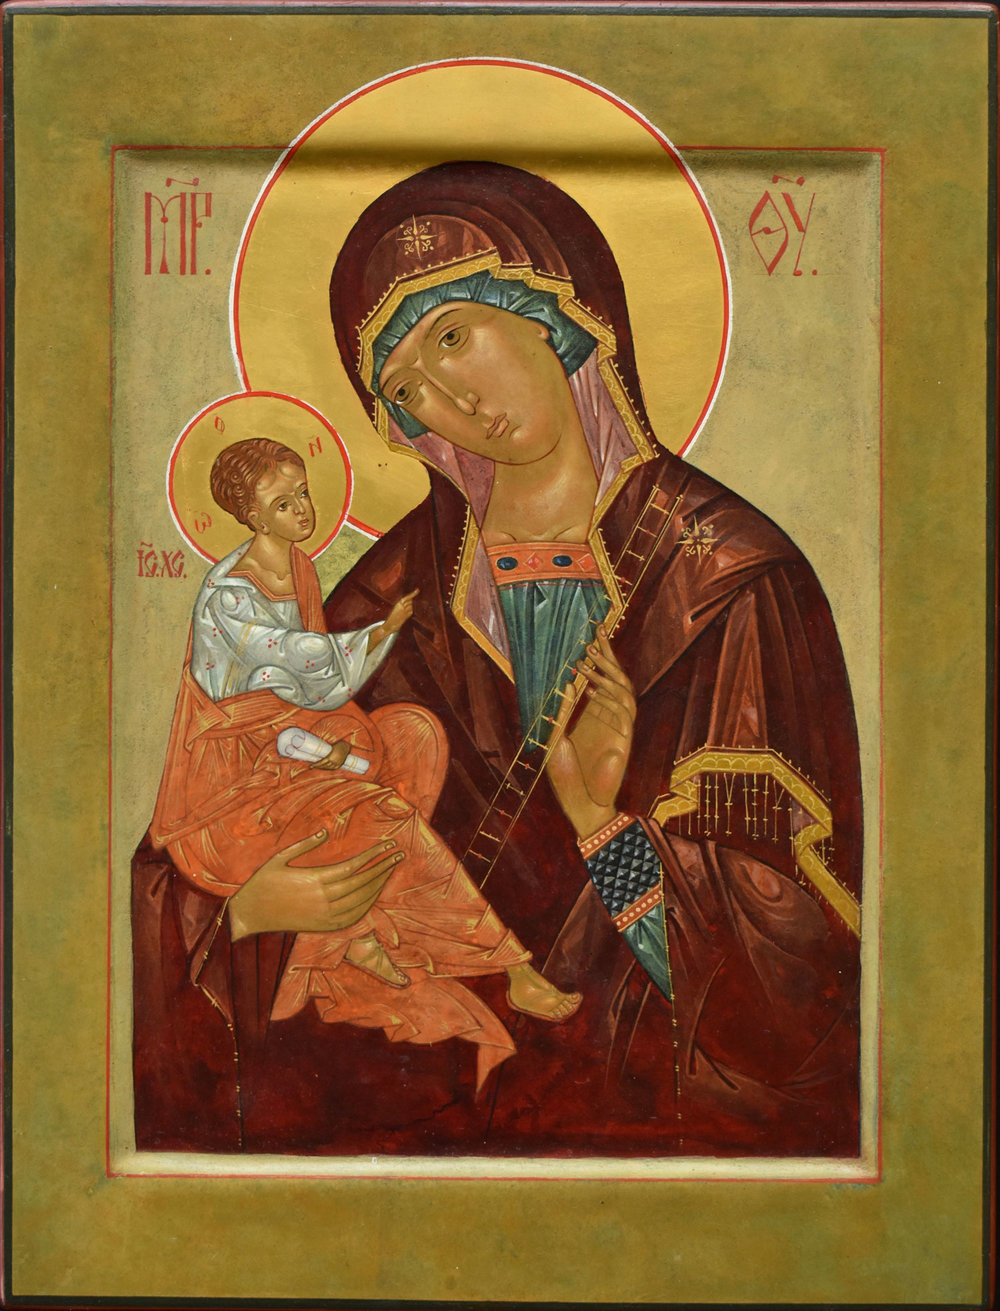 Theotokos of the Ladder (Anagogue)